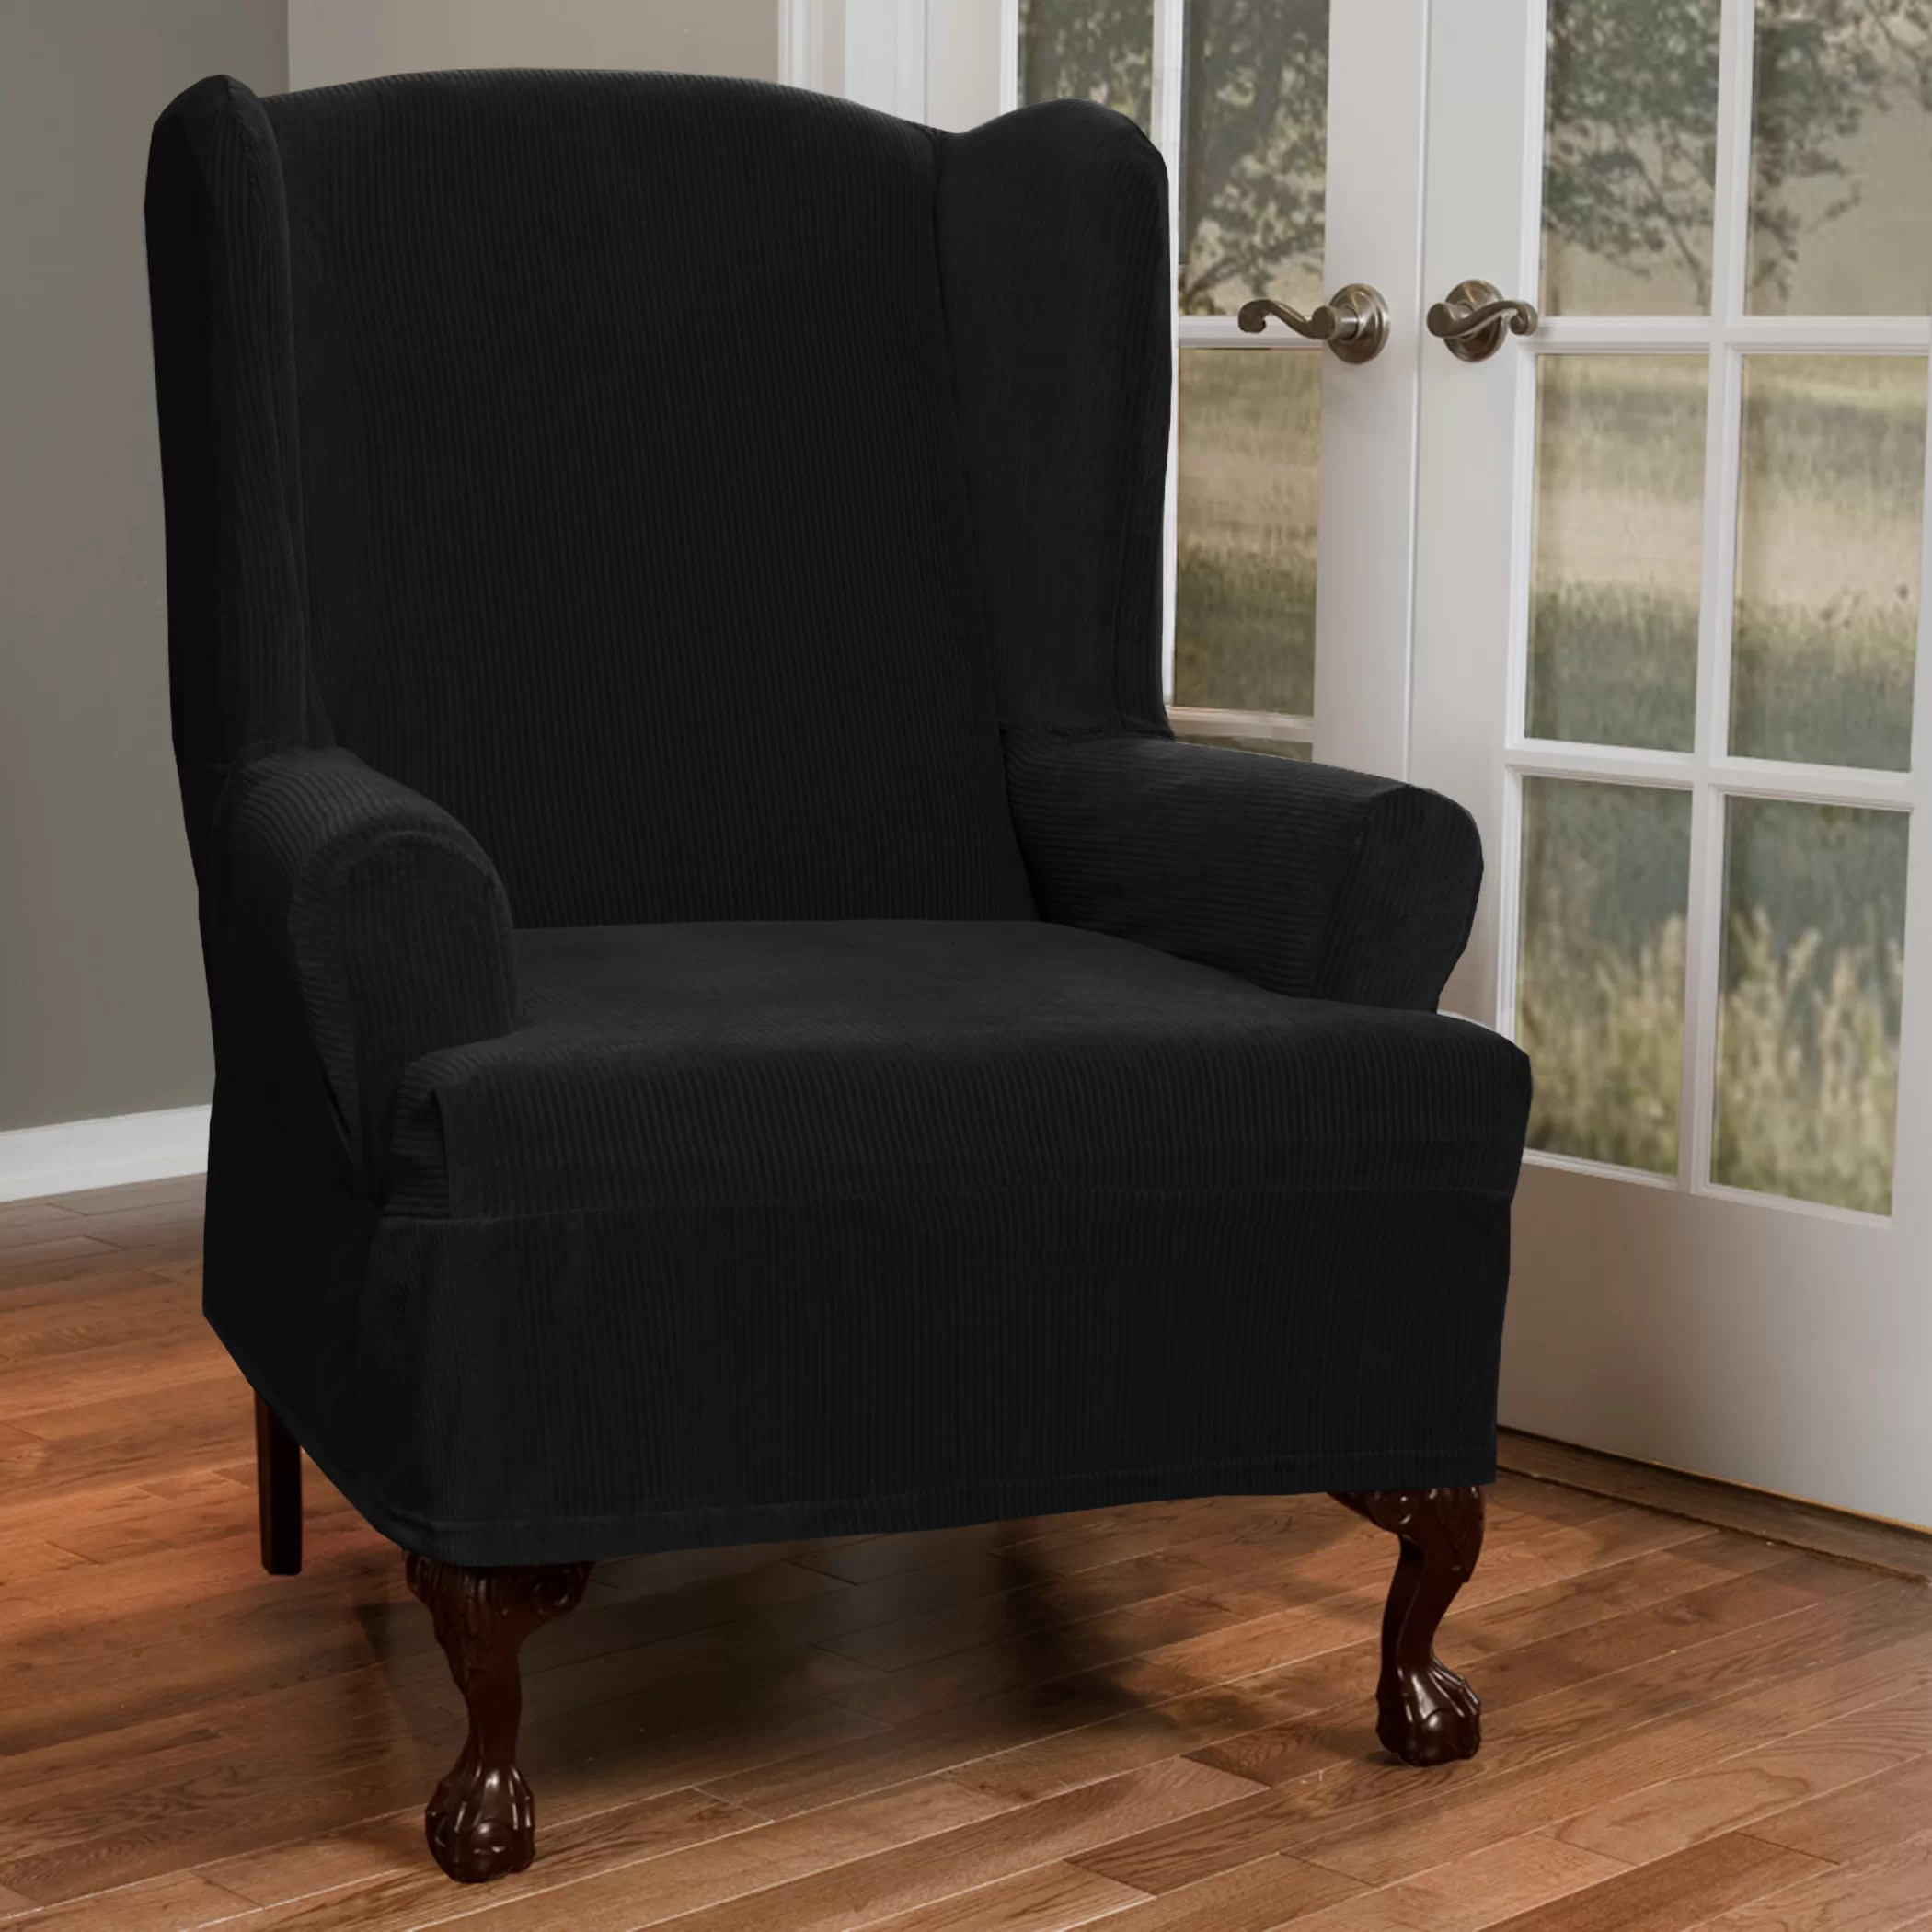 Maytex Collin Stretch TCushion Wing Chair Slipcover